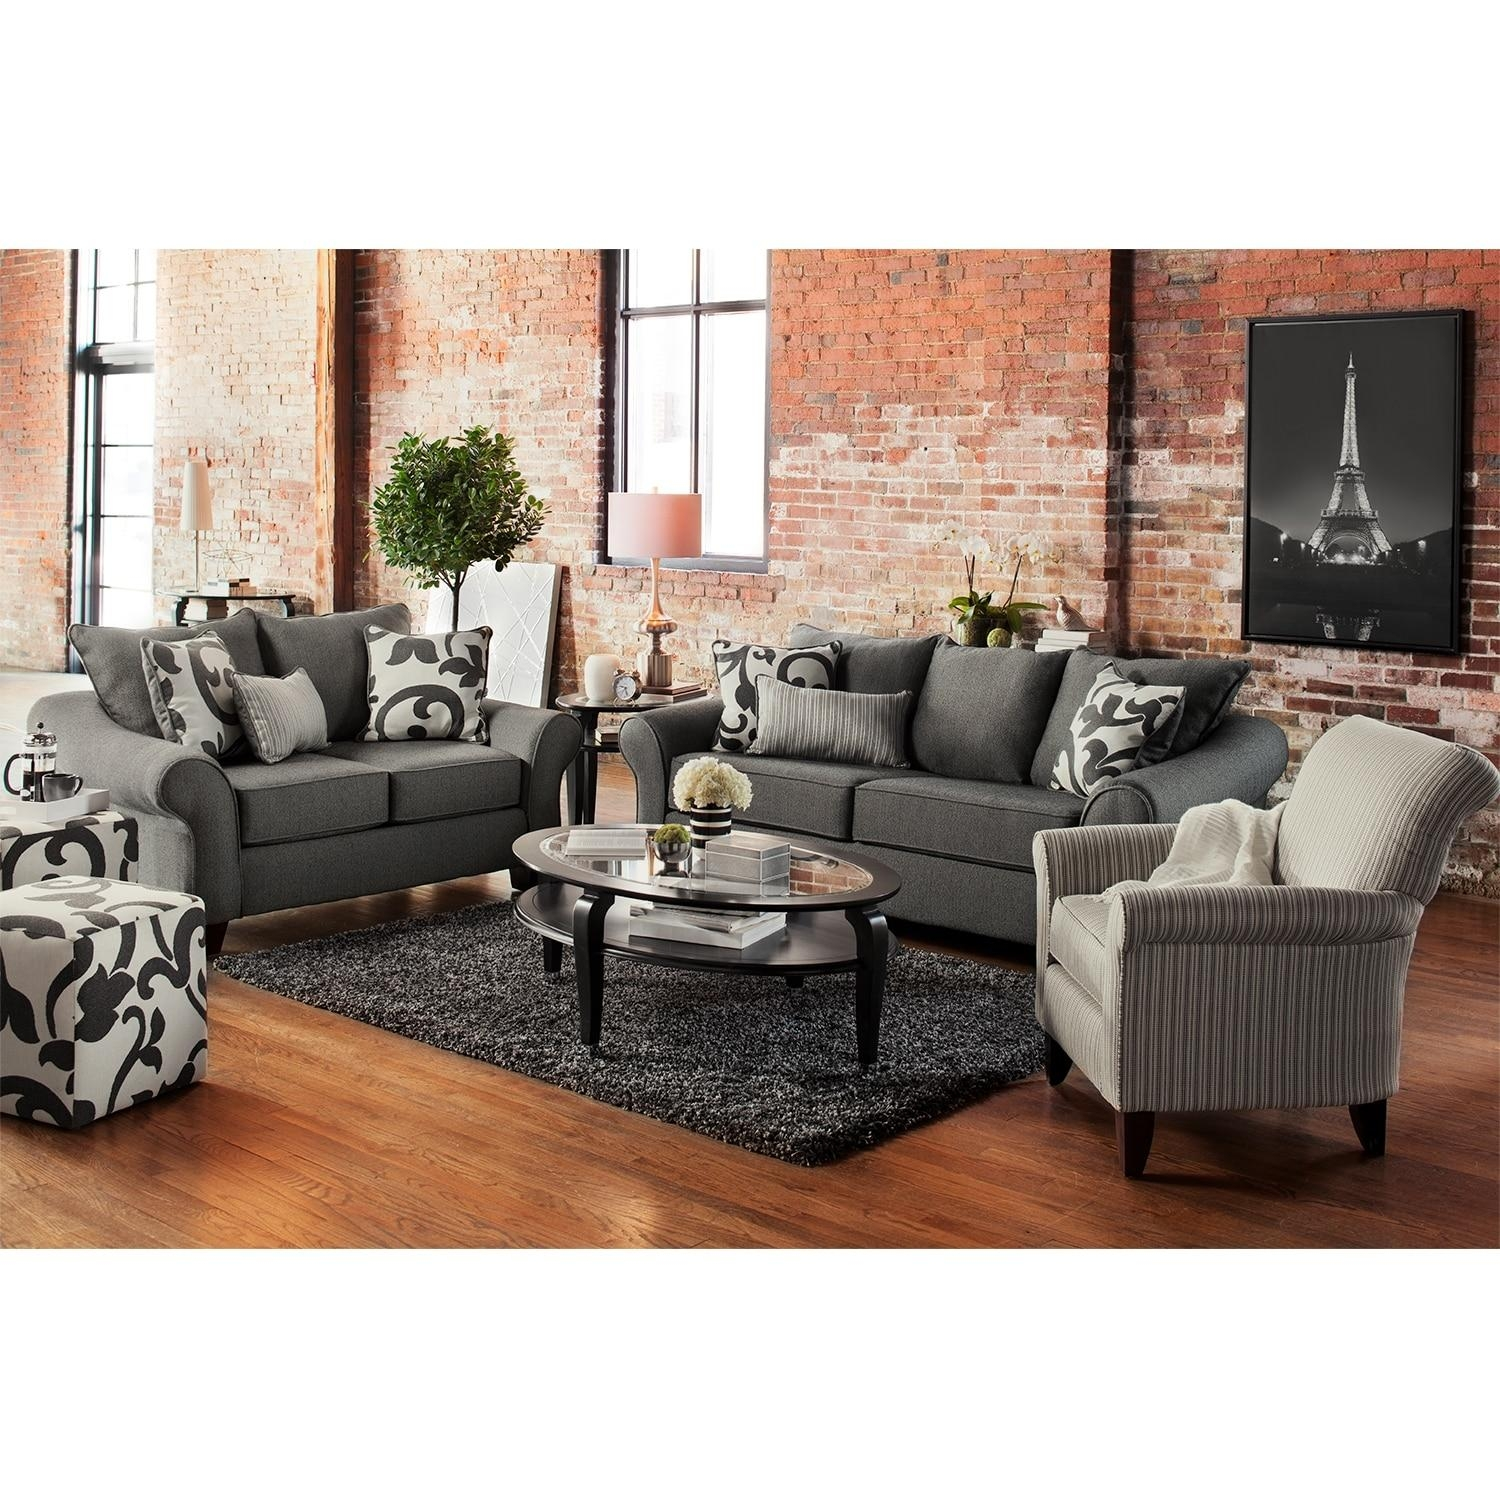 Colette Sofa And Loveseat Set – Gray | Value City Furniture Inside Sofa Loveseat And Chairs (Image 8 of 20)